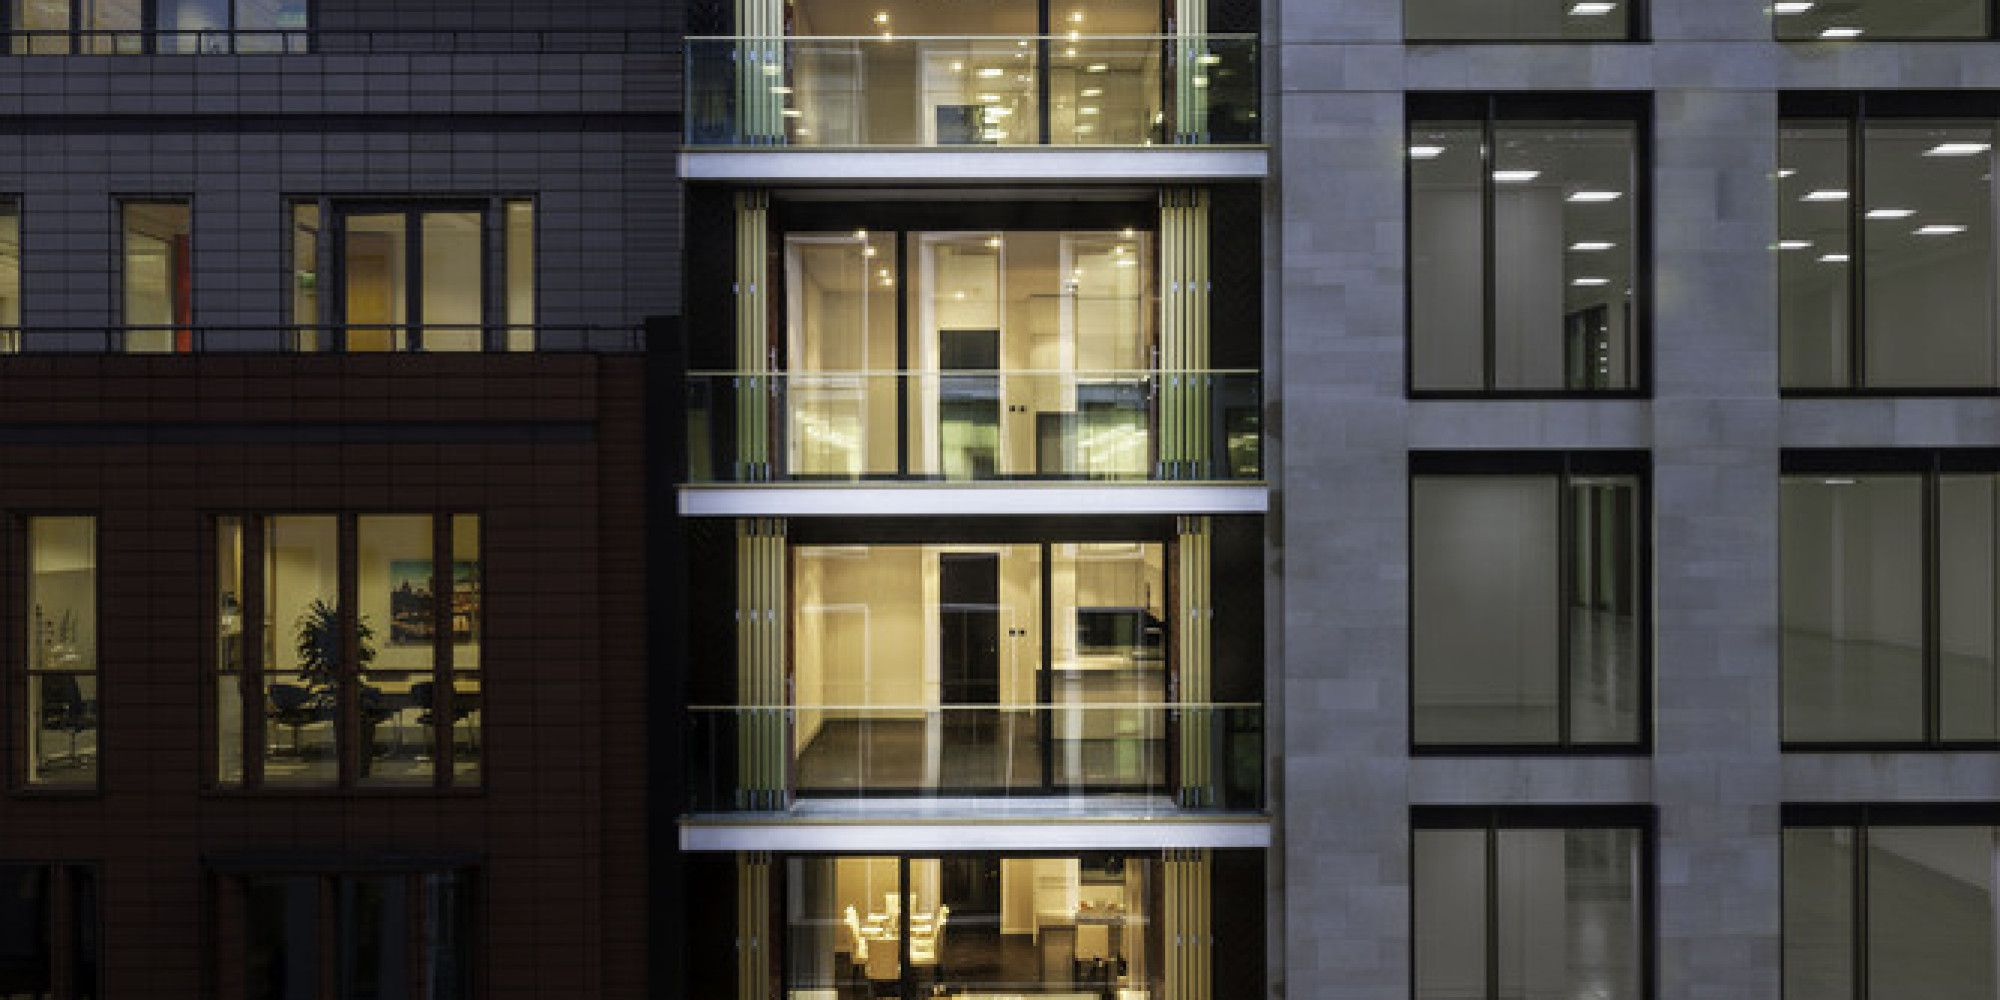 modern urban apartment building - Google Search | Brick ...